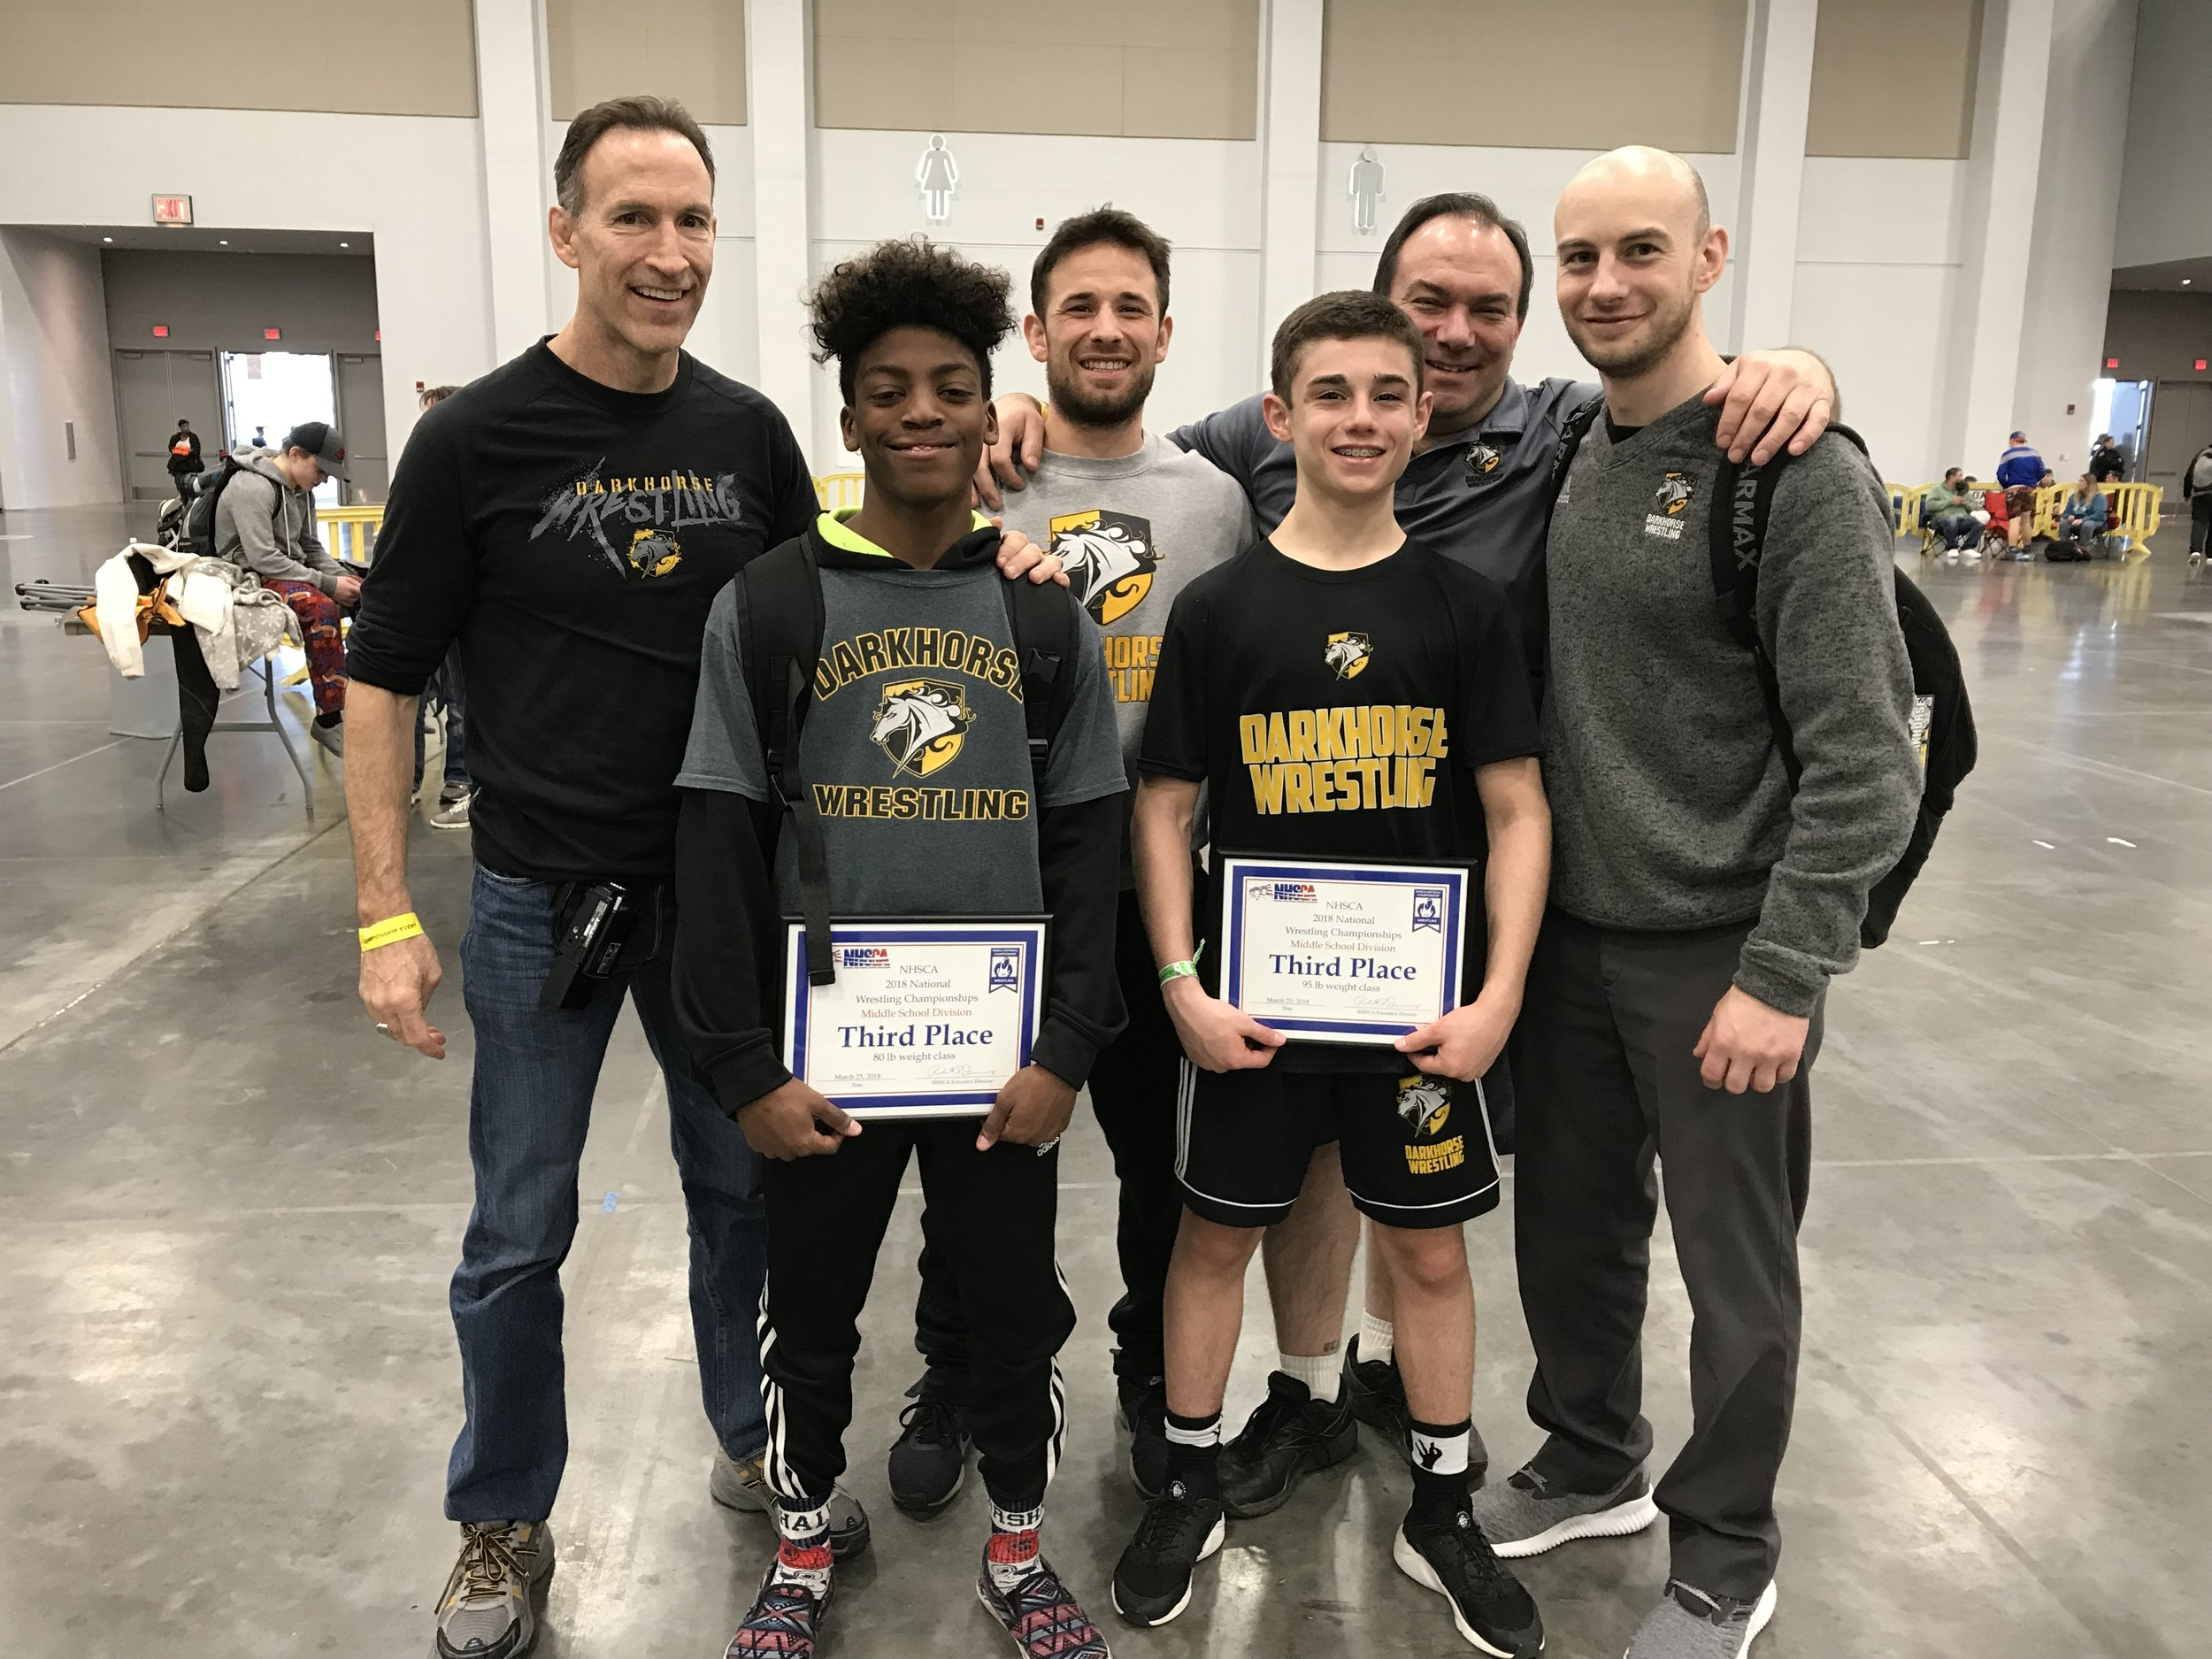 Congrats to NHSCA All-americans - Marcus Jackson (3rd) and Kyle Montaperto (3rd)